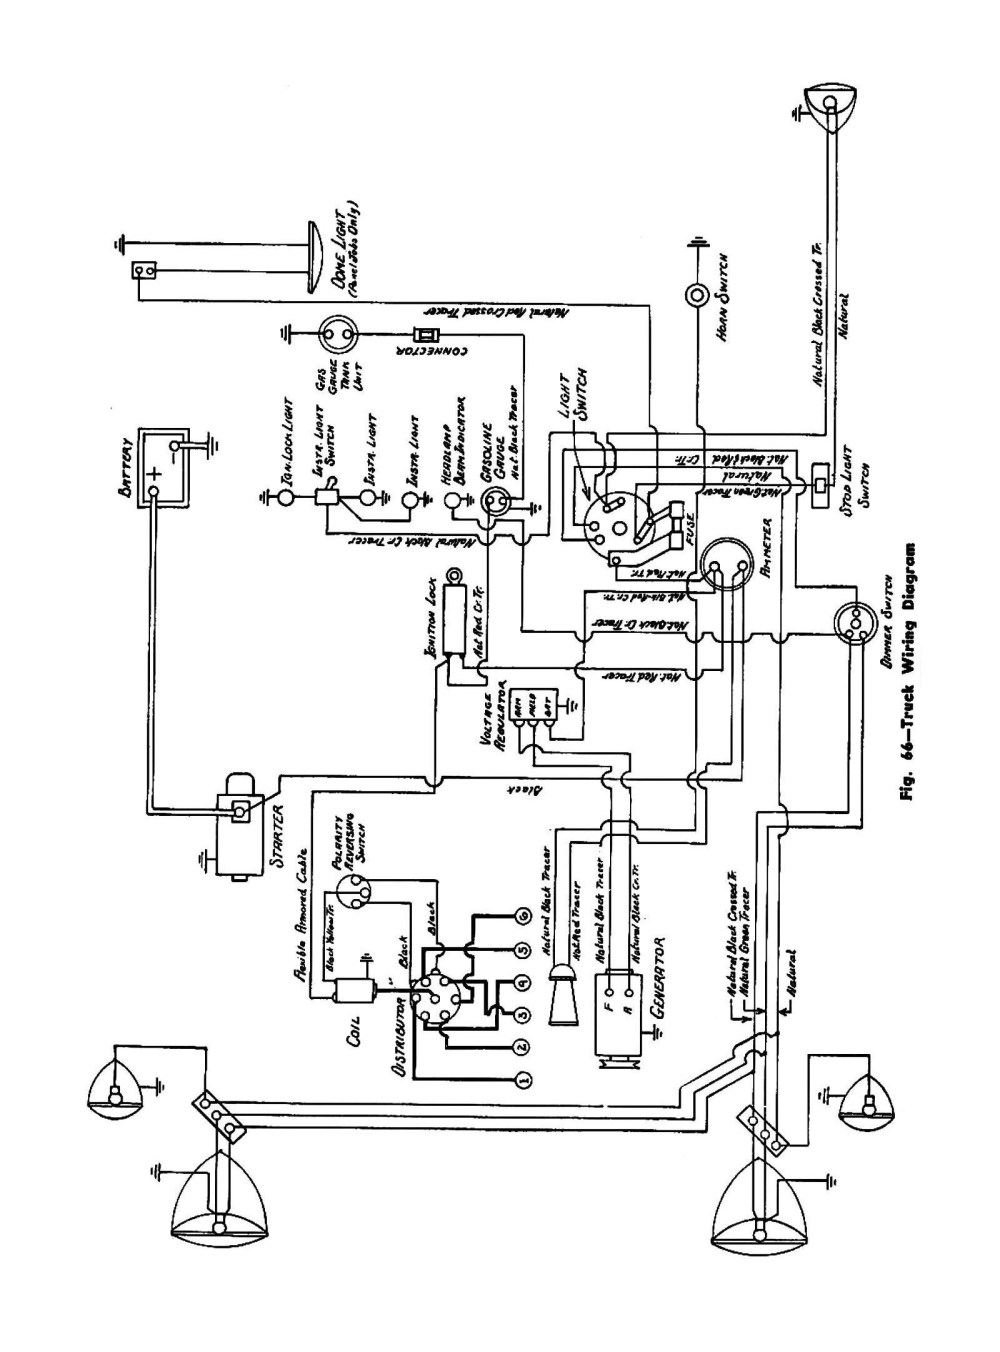 medium resolution of 1946 chevy pickup ignition wiring diagram schematic wiring diagram 1946 chevy pickup ignition wiring diagram schematic